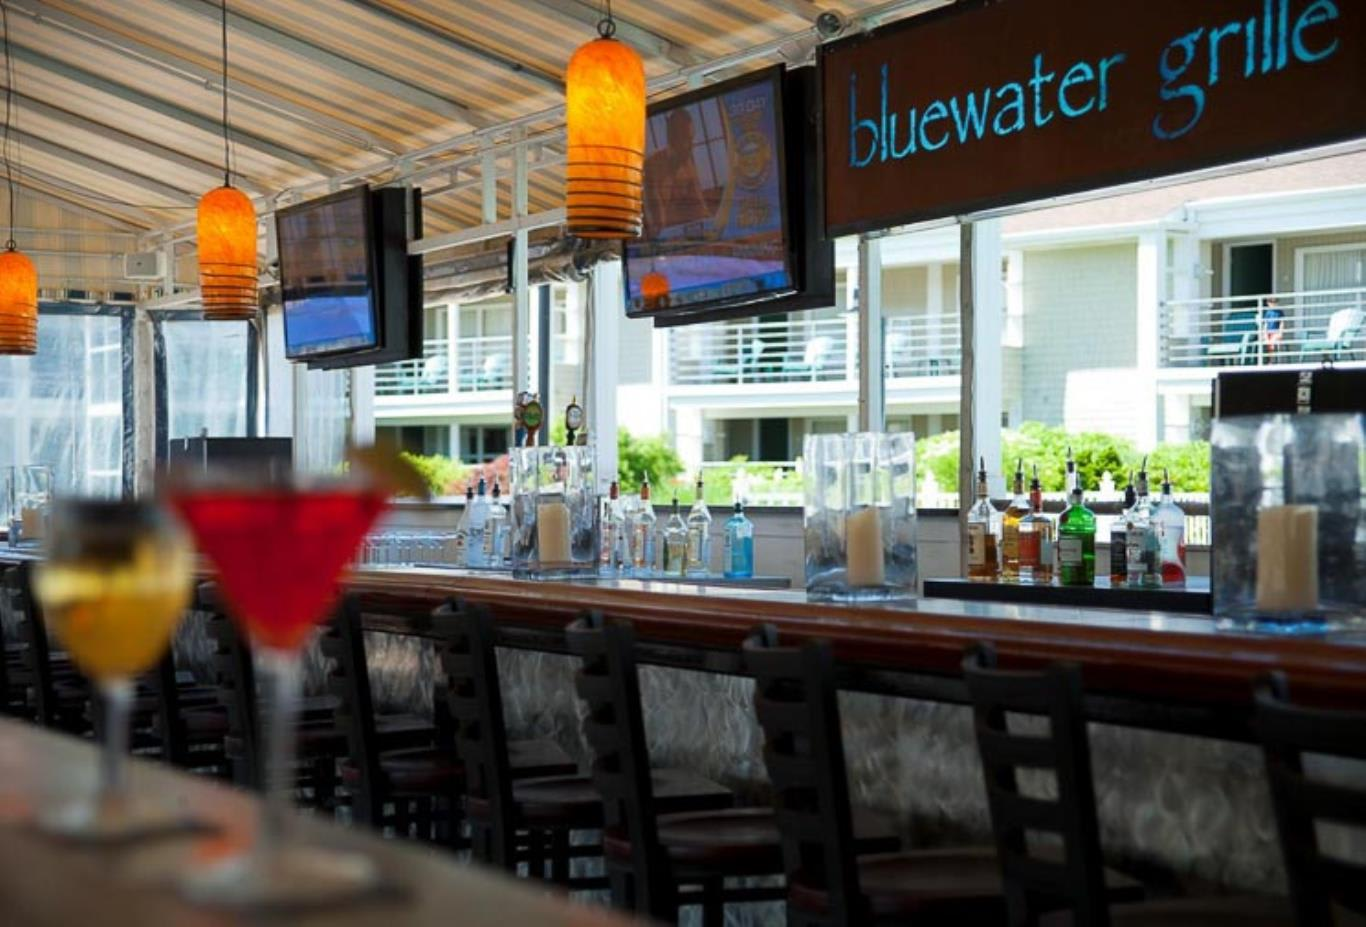 Bluewater Grille